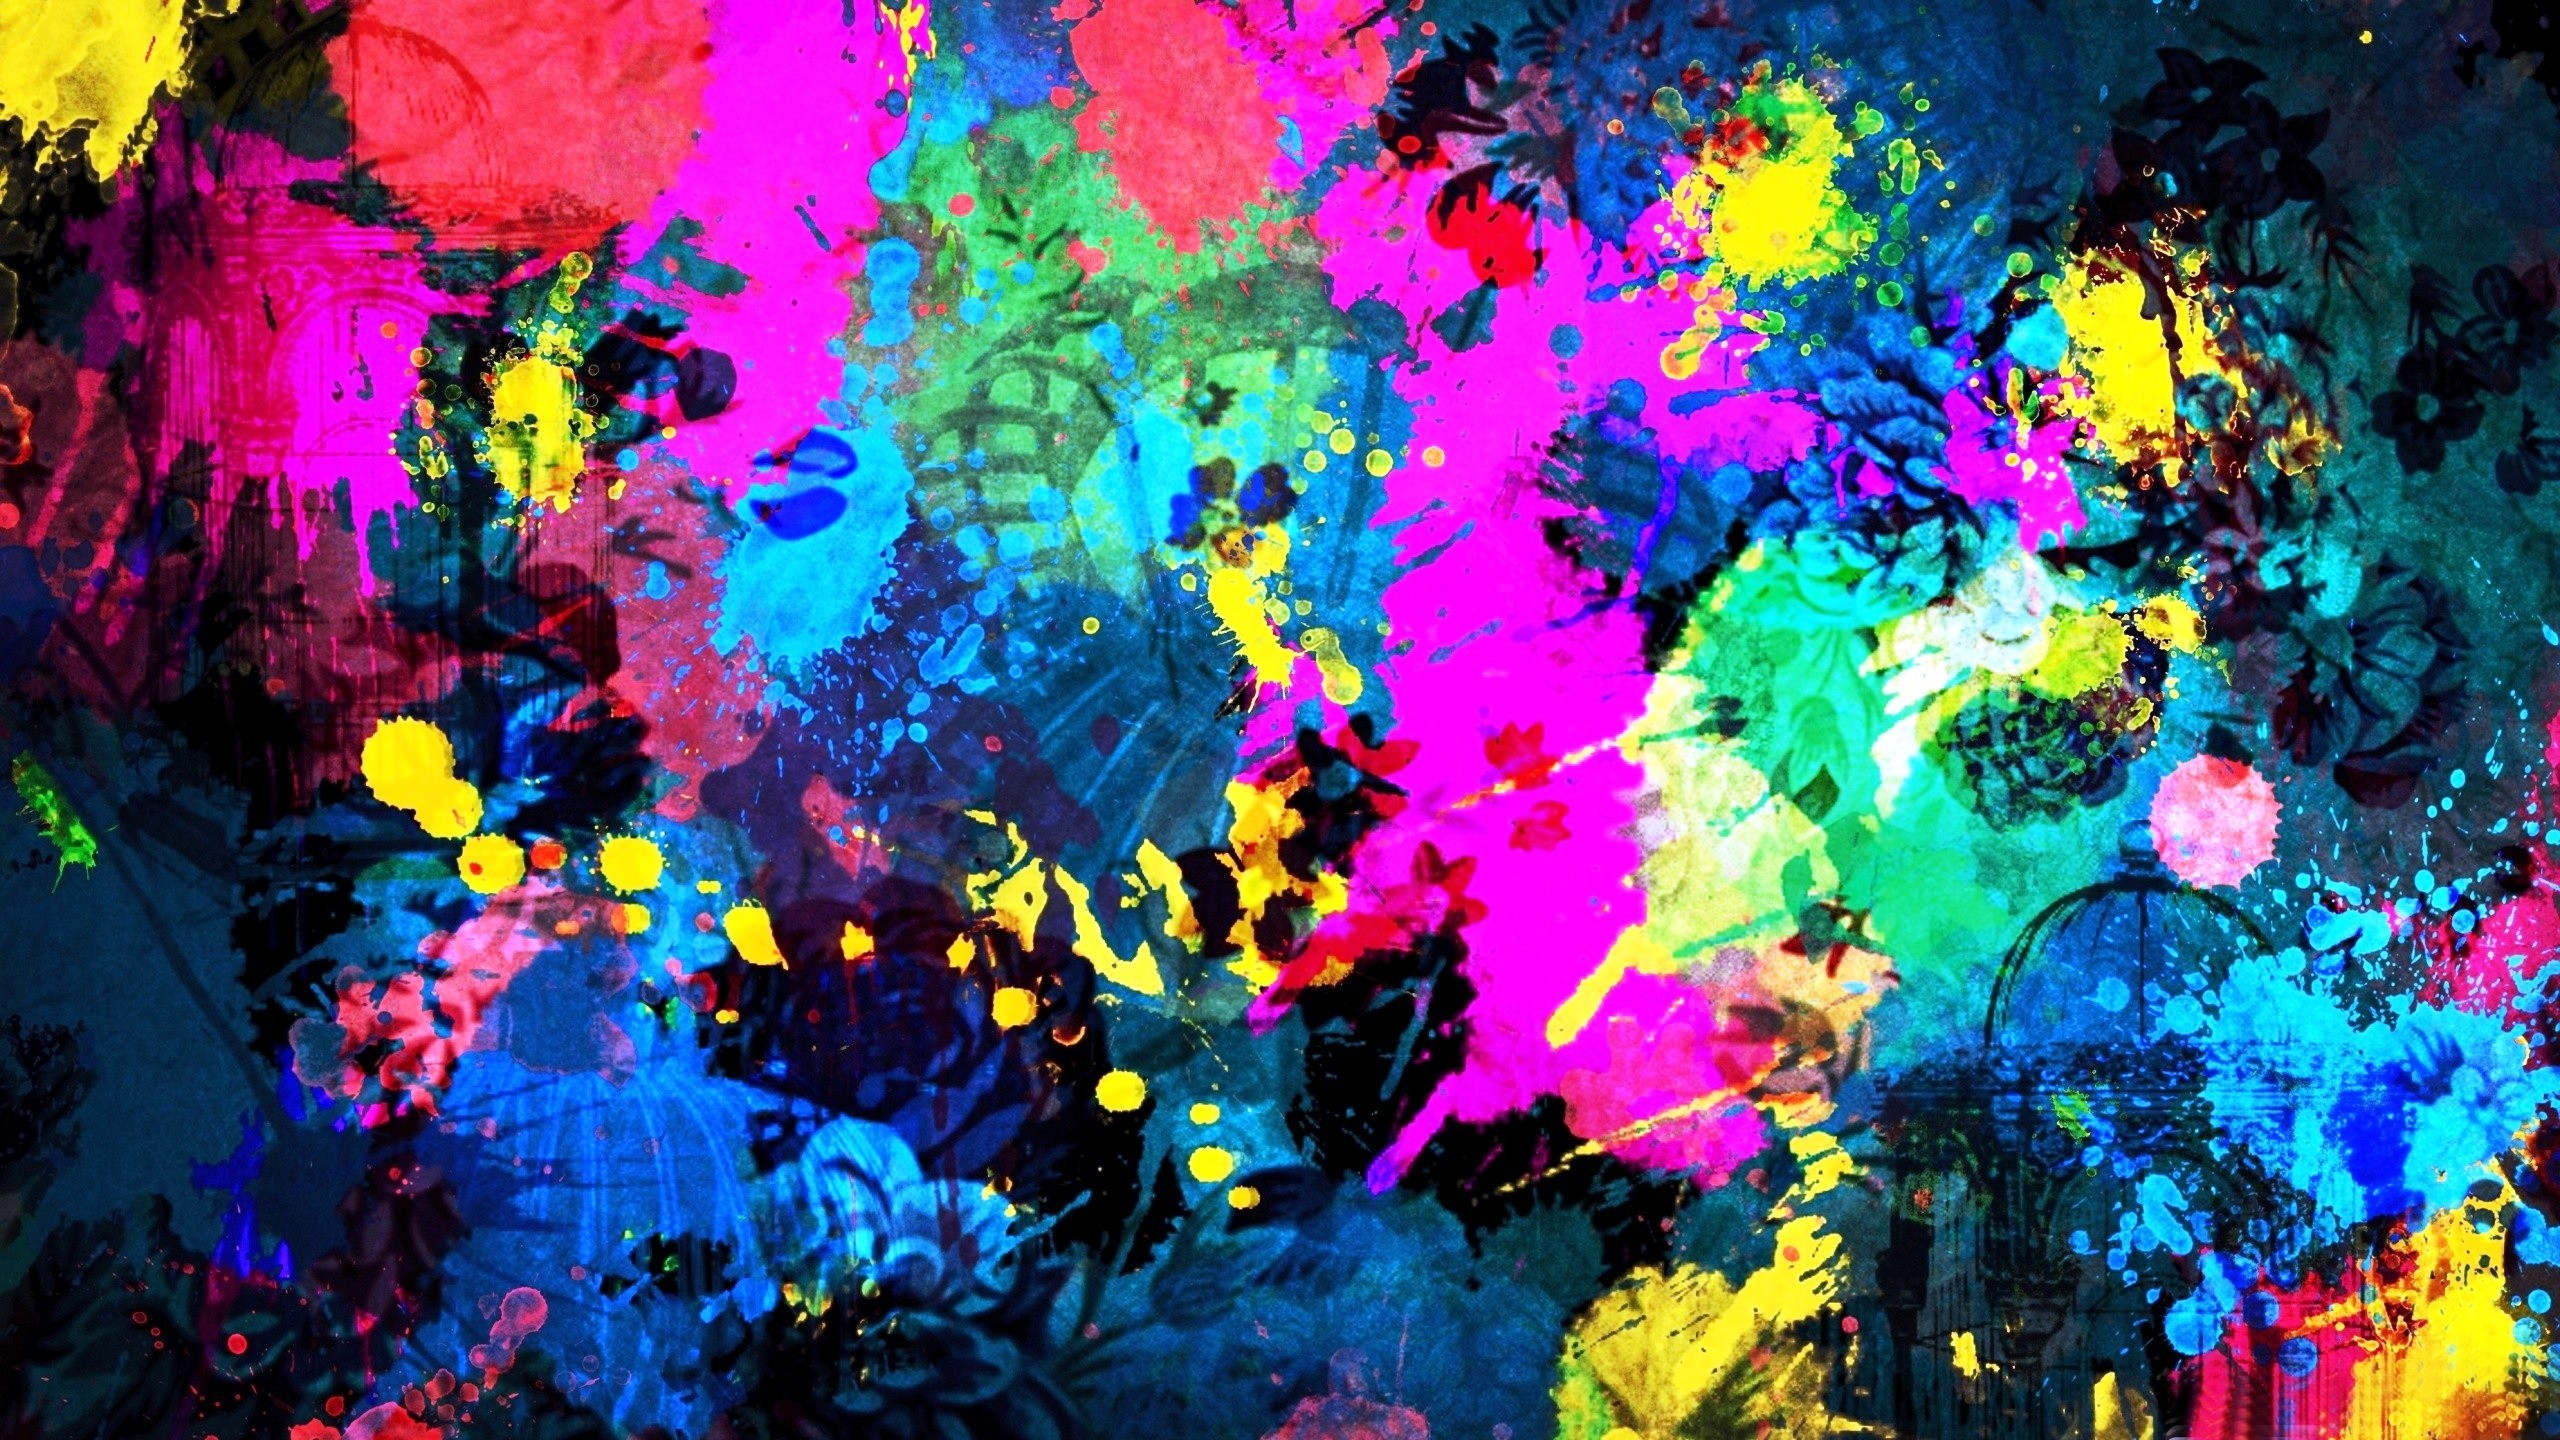 Download HD Abstract Art Wallpaper Widescreen 2 pictures in high 2560x1440